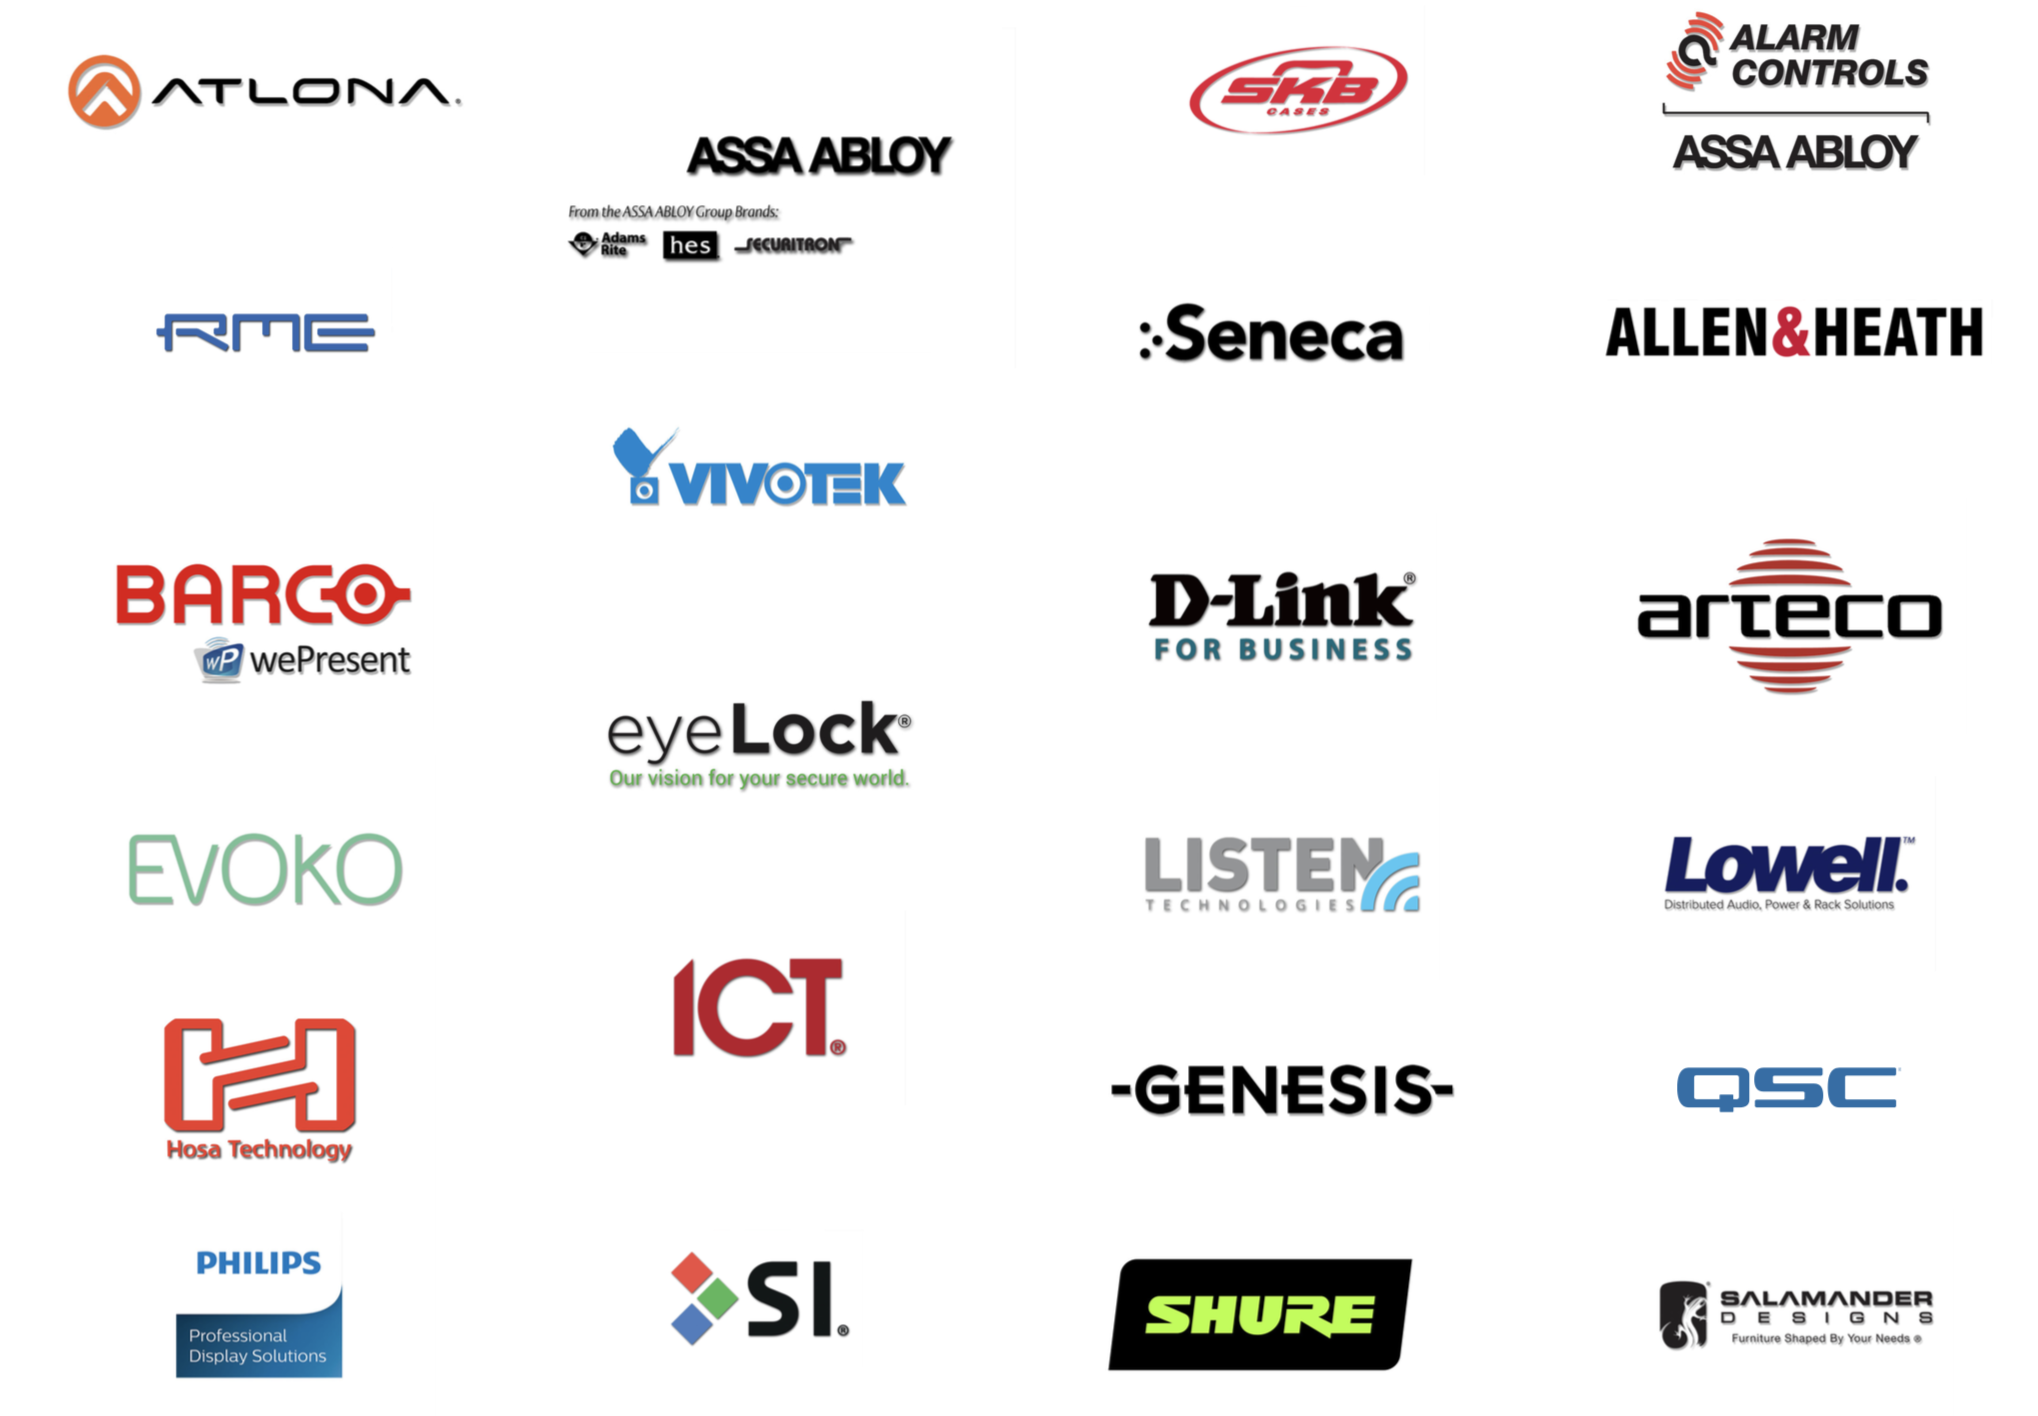 Expect to see all of these manufacturers featured at CoreX!